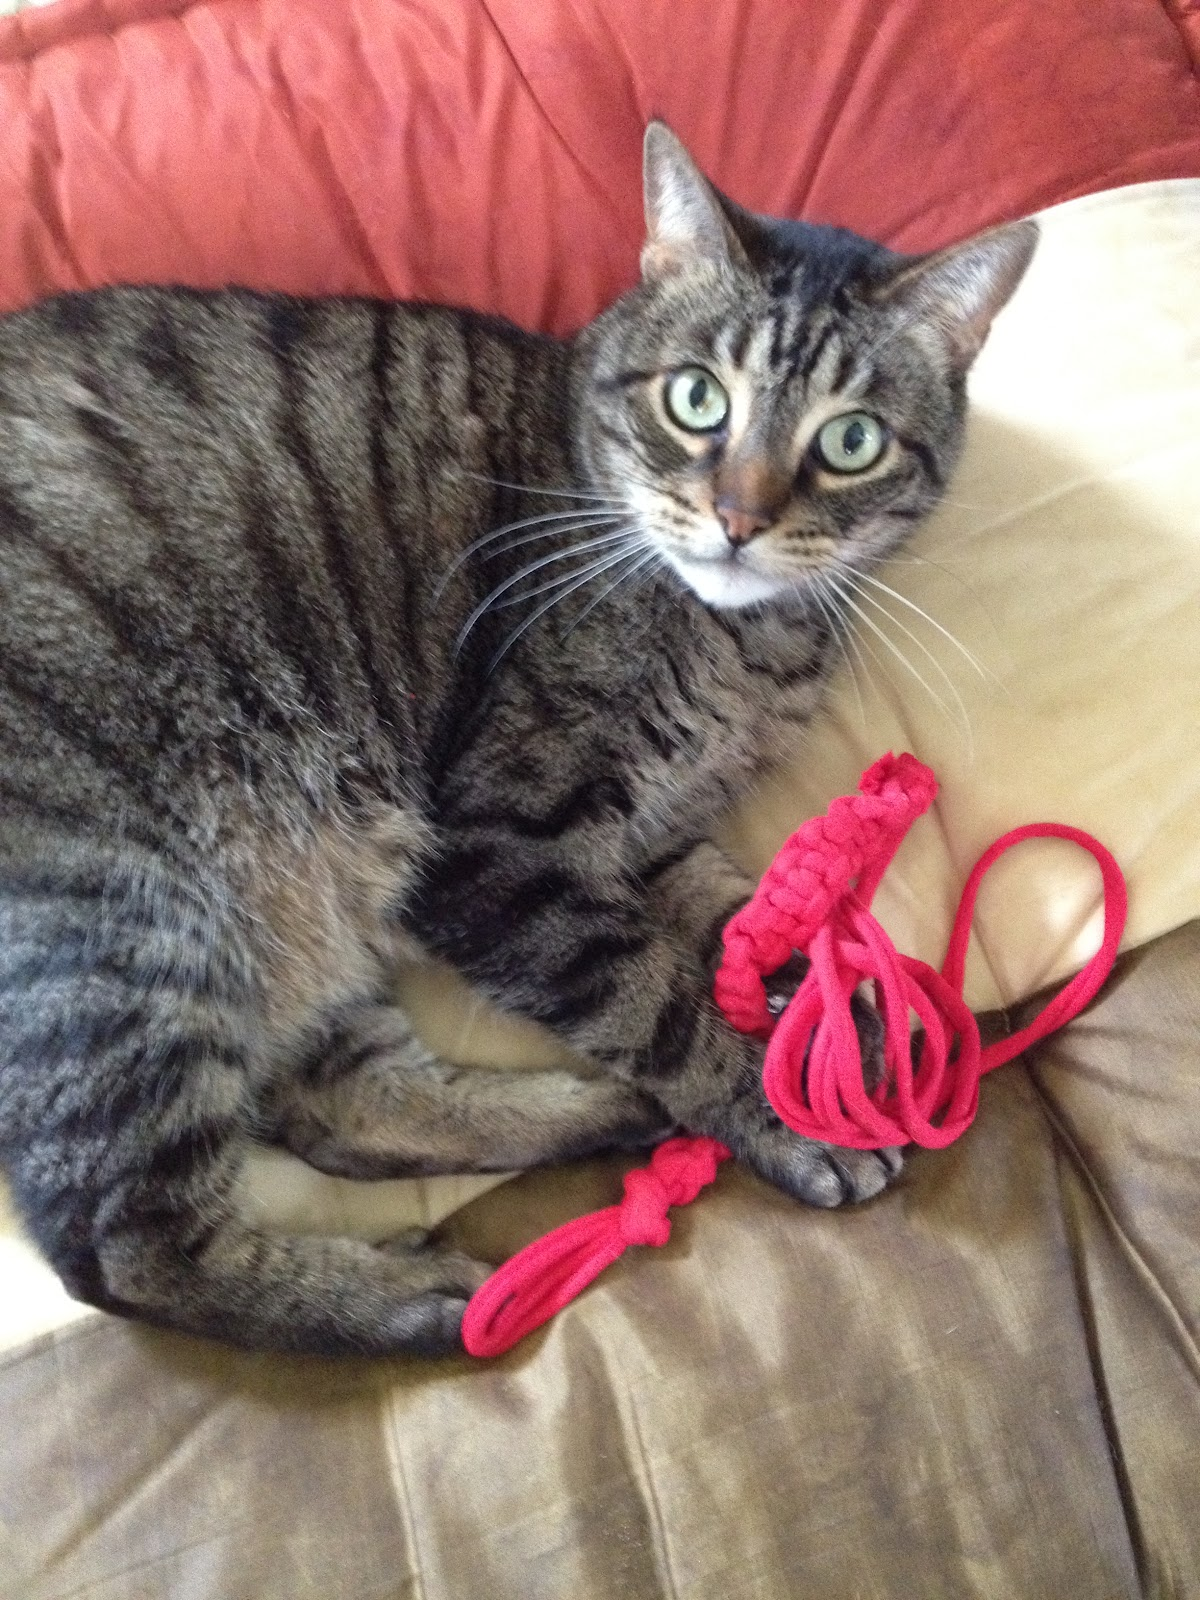 Upcycled stuff a cat toy made of t shirt yarn ive been experimenting with cat toyseap easy diy cat toys i found one thats been a real hit with the kitties as gremlin demonstrates here reviewsmspy